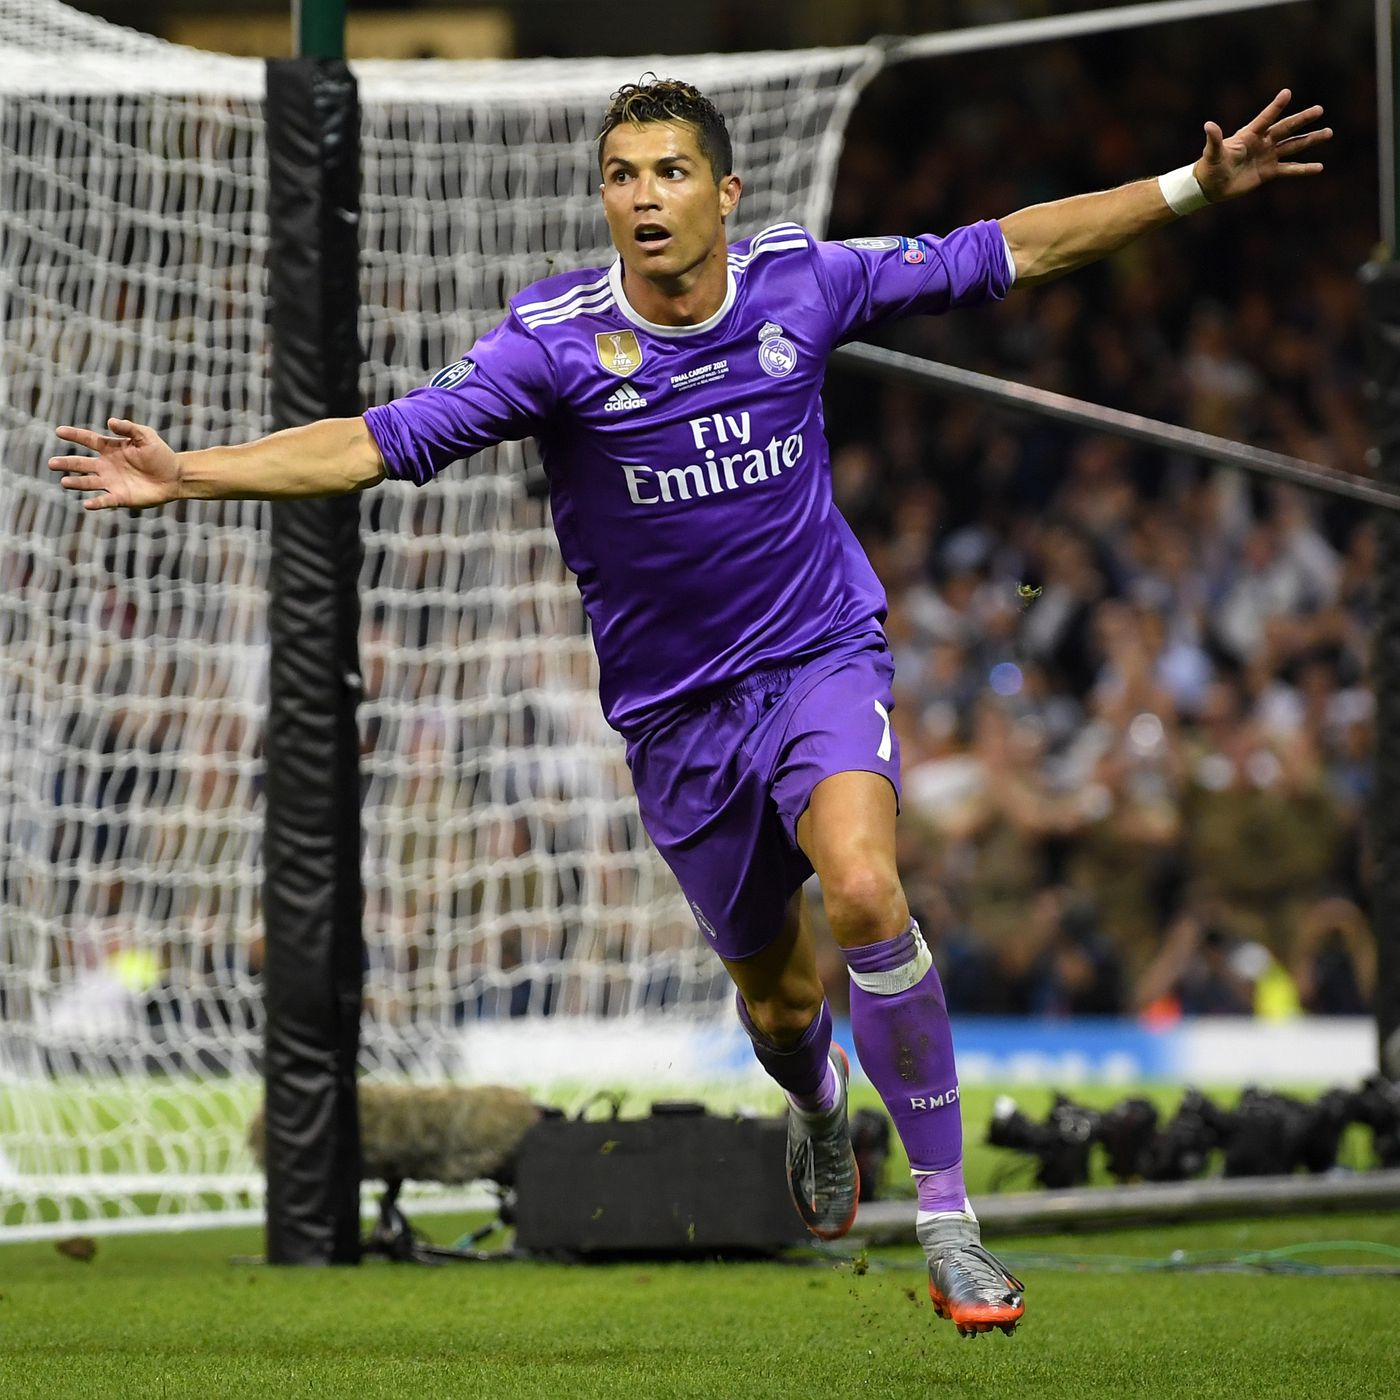 finest selection dabe1 8d93d Real Madrid vs. Juventus: Final score 4-1, Cristiano Ronaldo ...